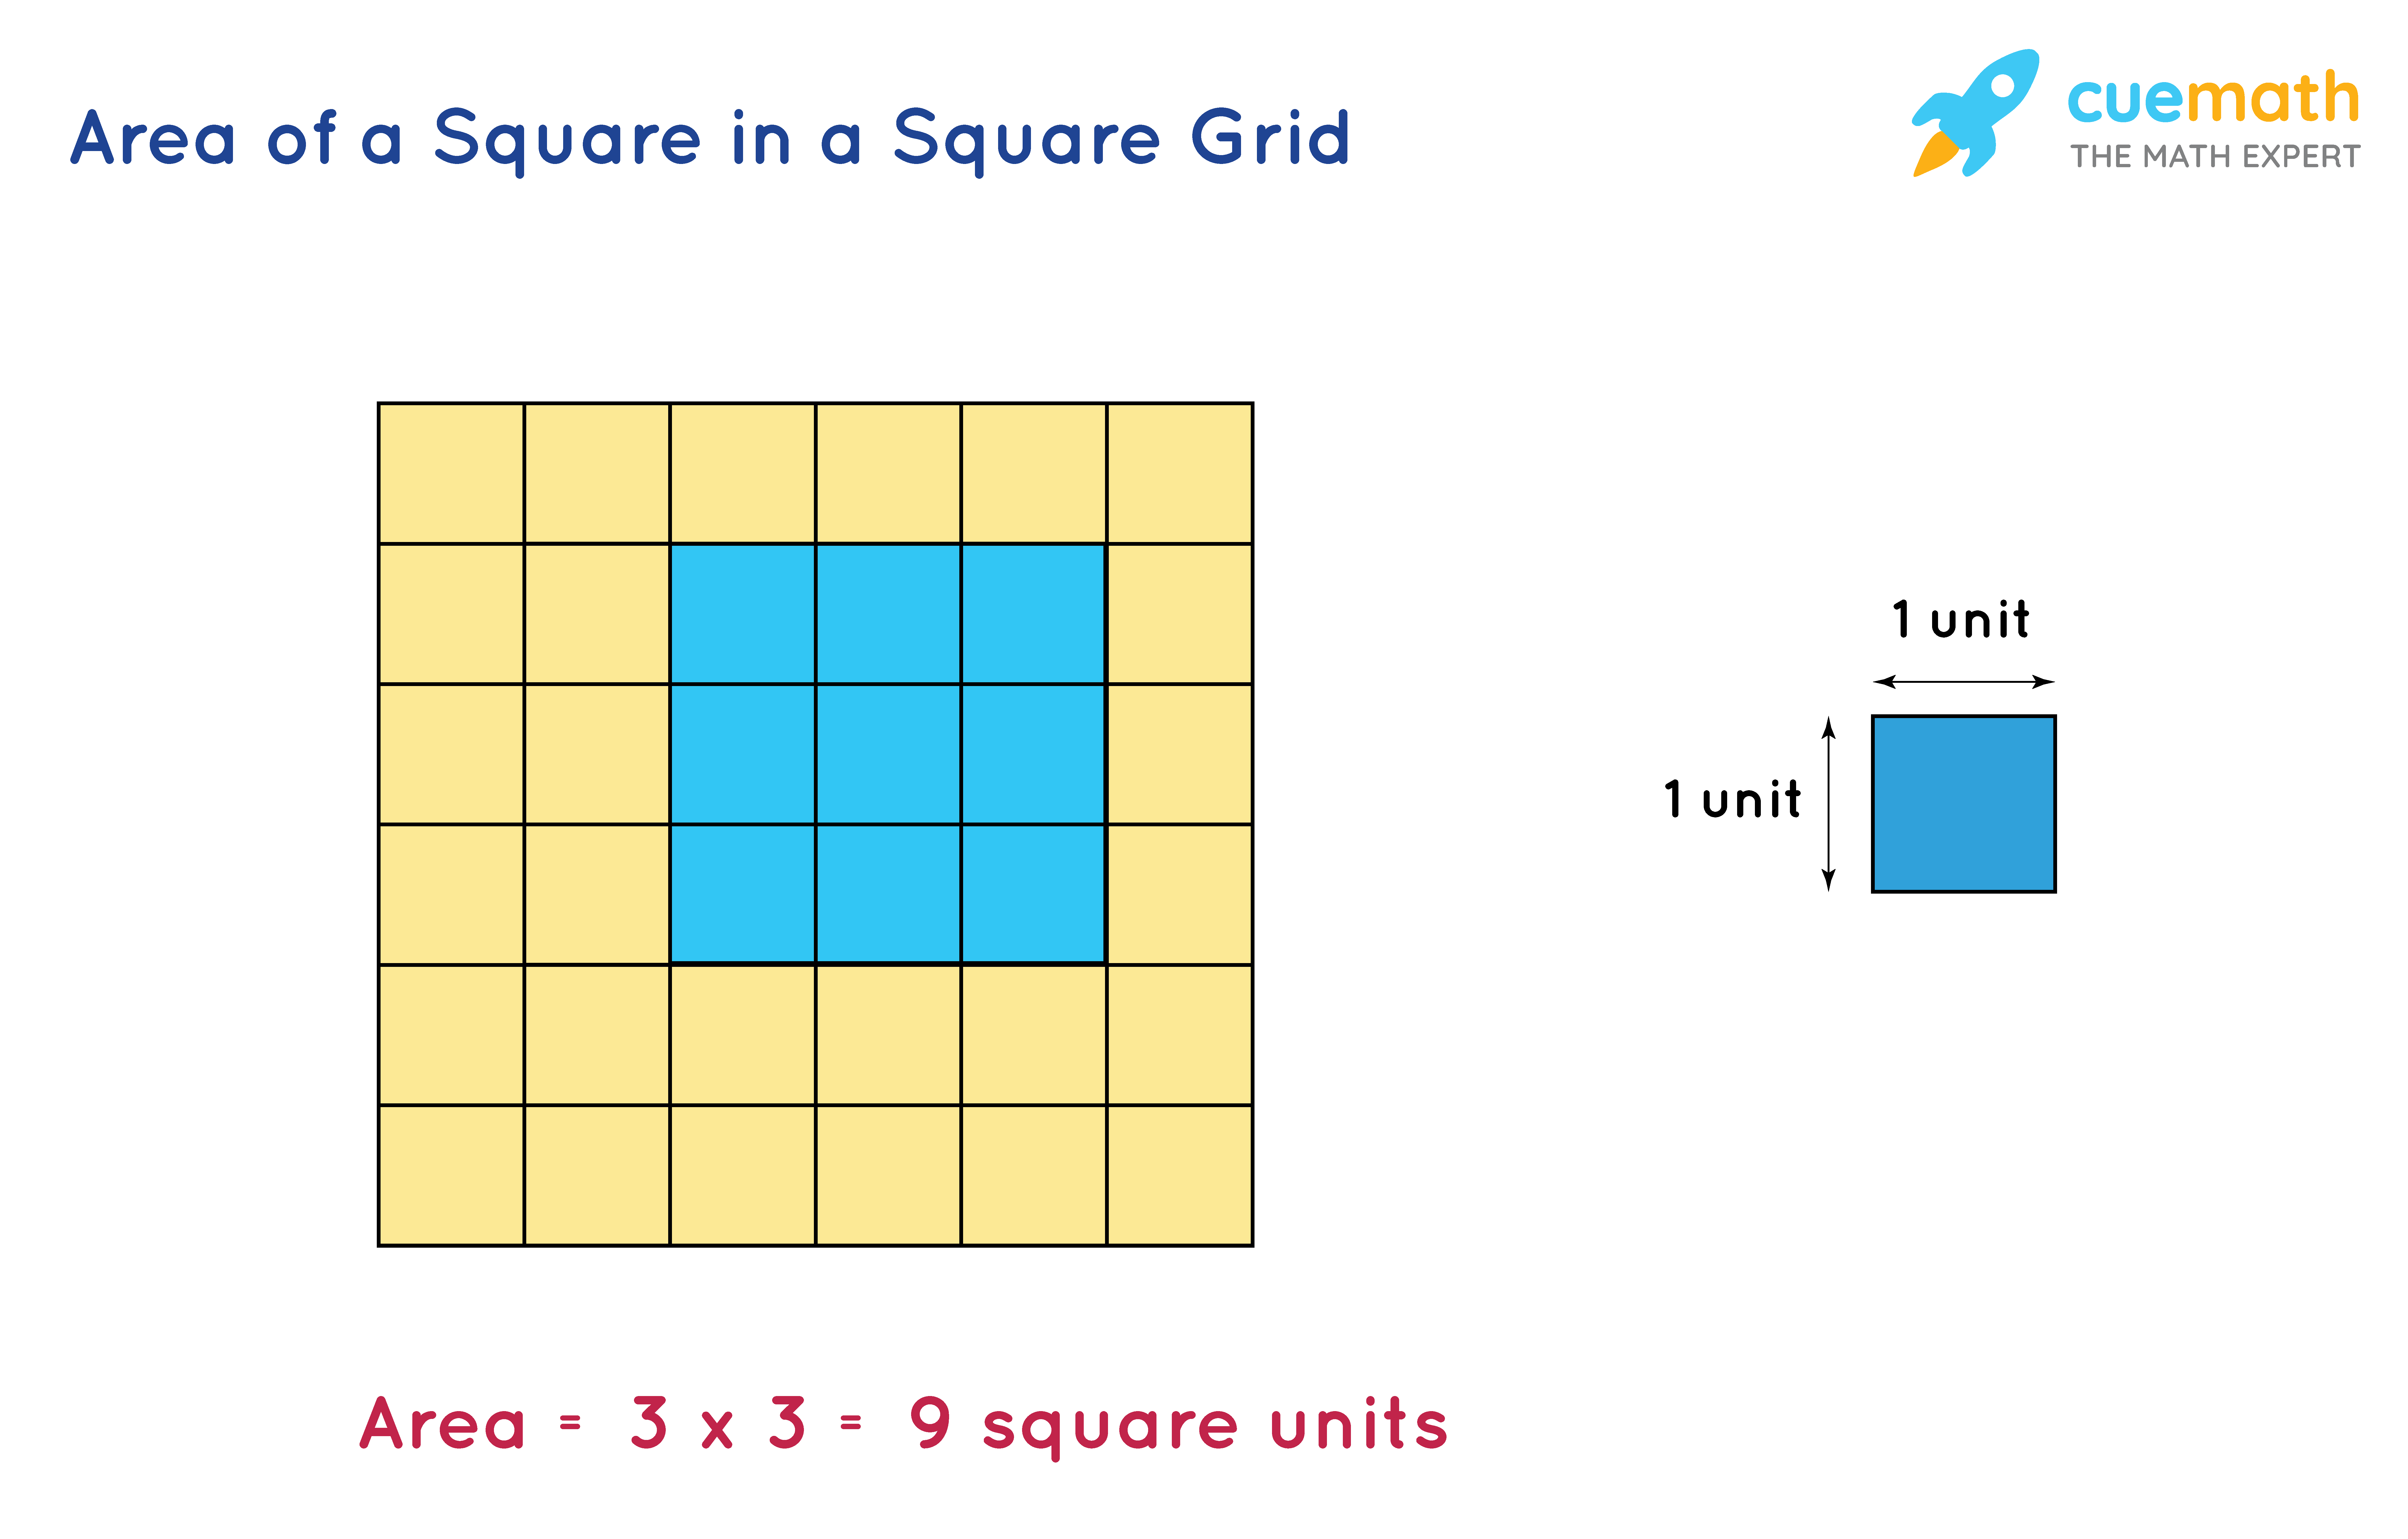 Area of a Square in a Square Grid